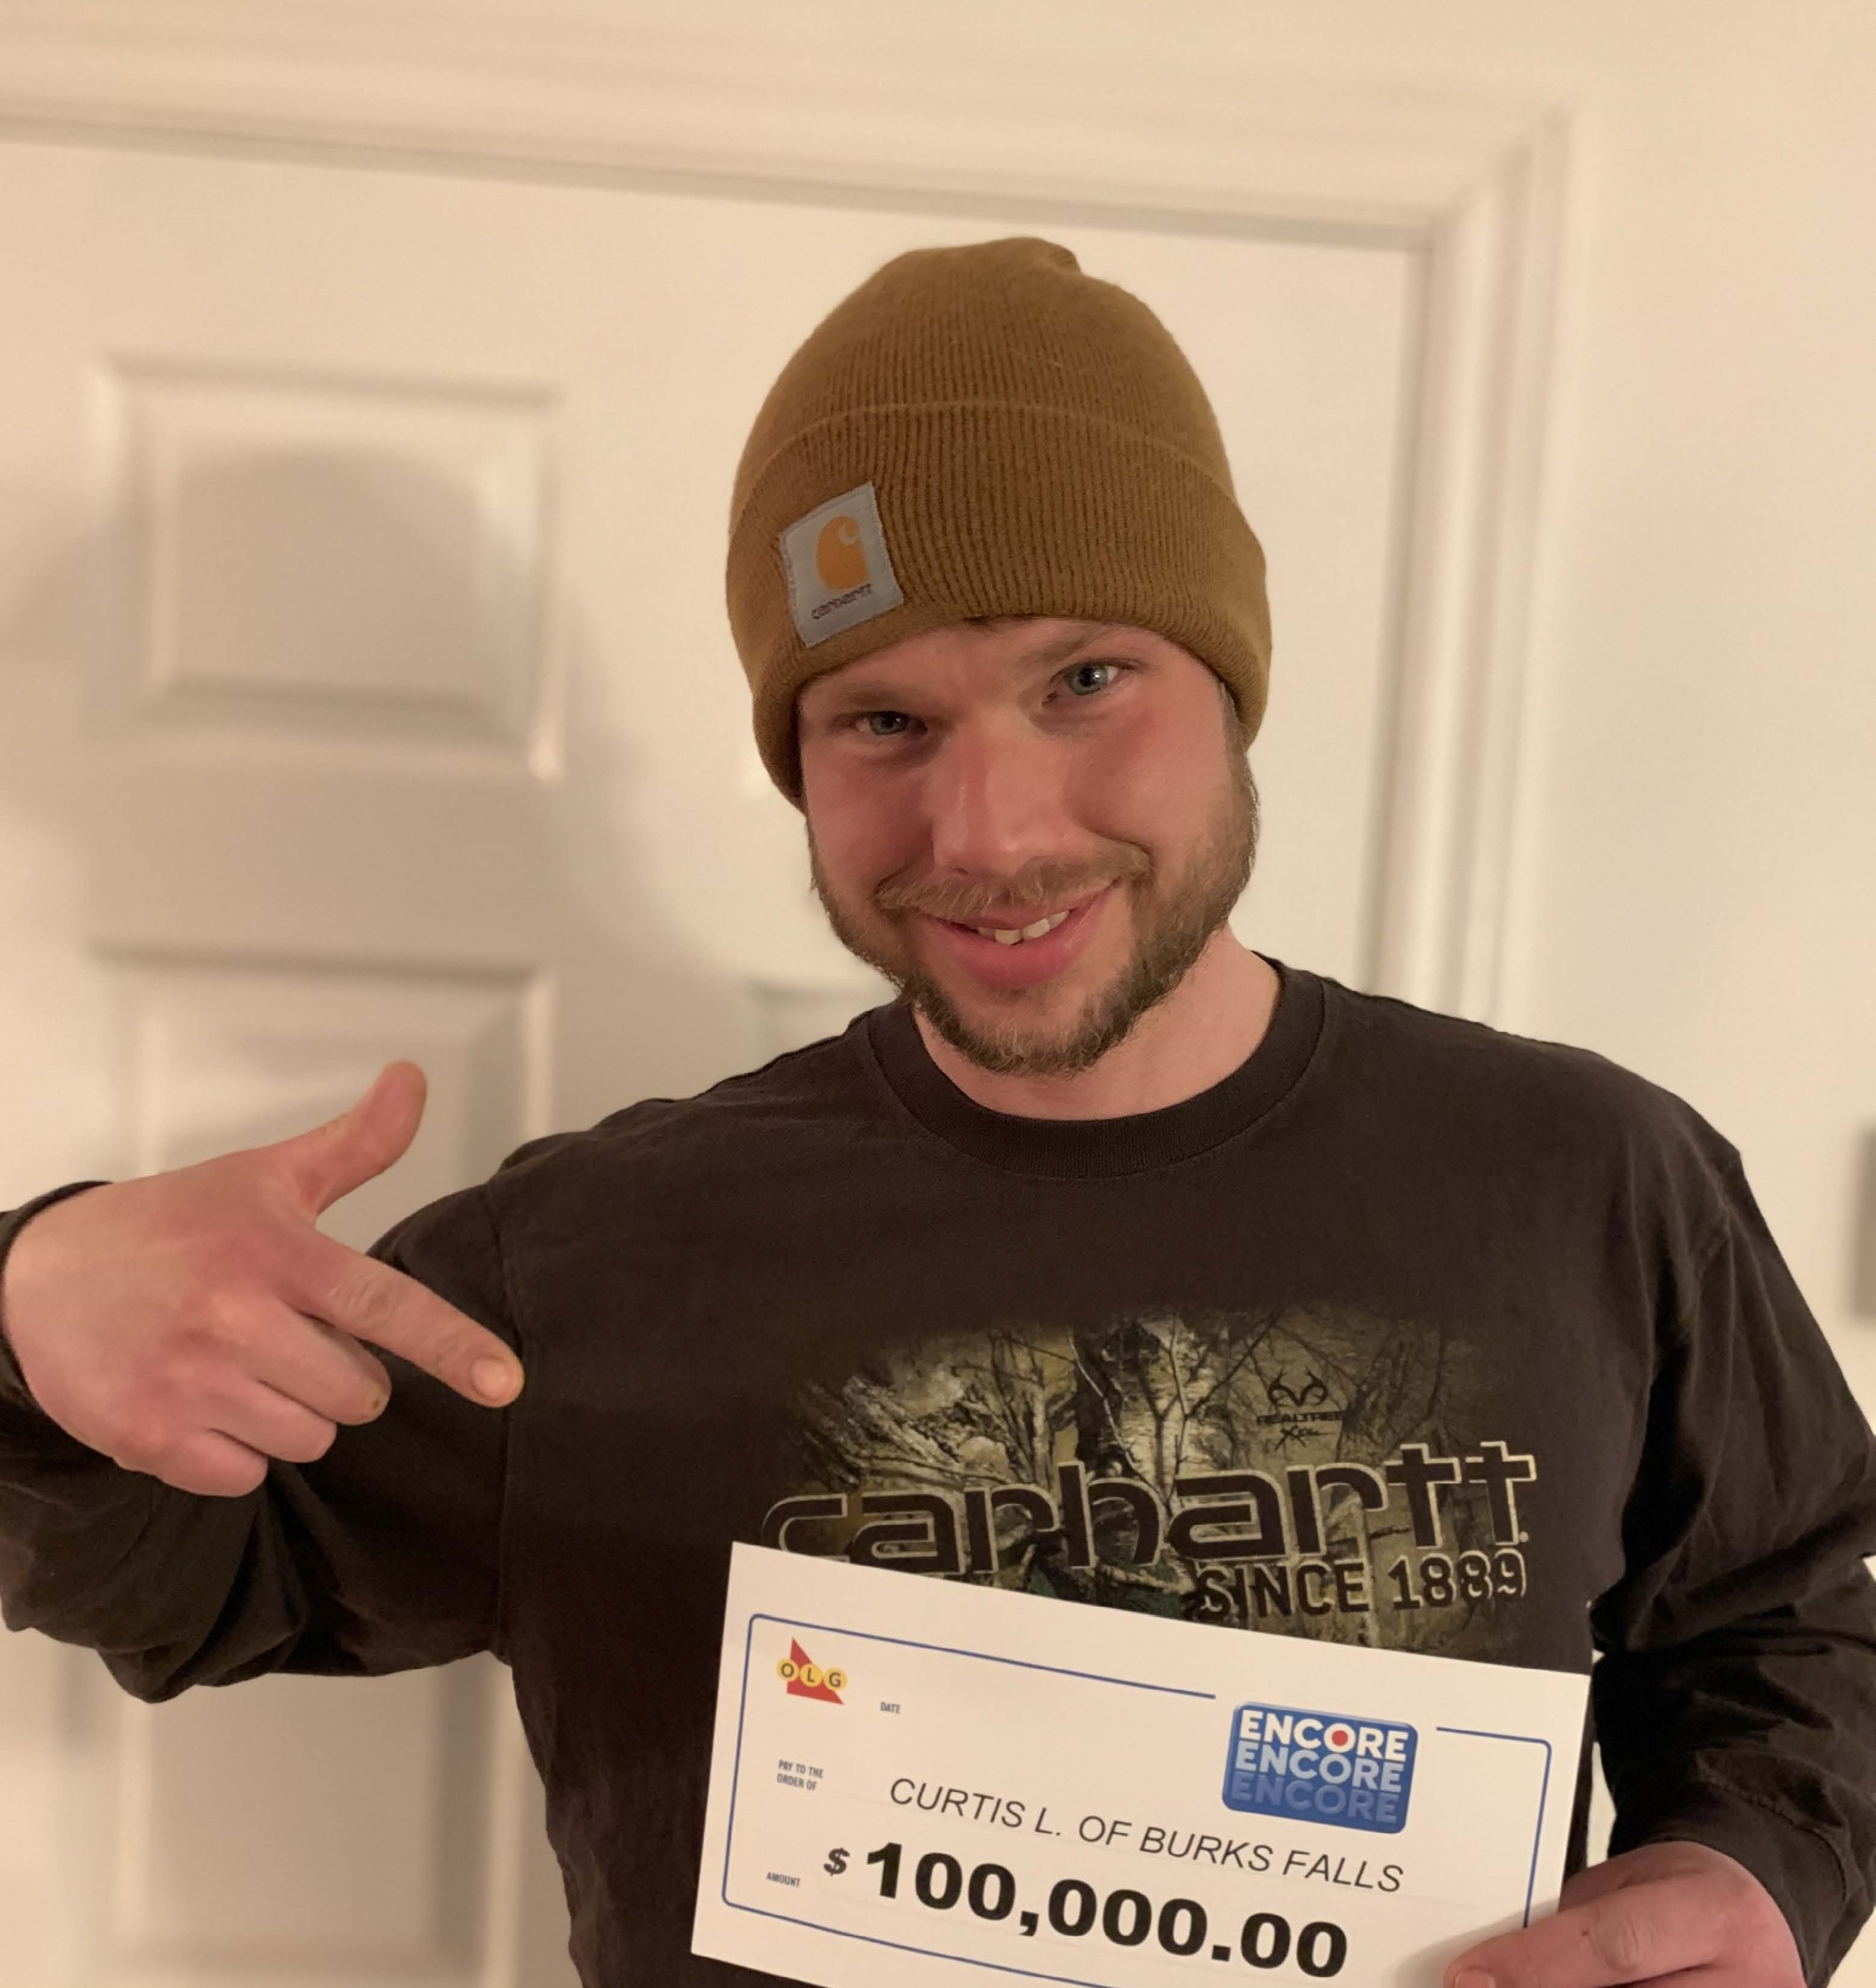 Burk S Falls Man Will Buy A Big Boat With His Winnings North Bay News